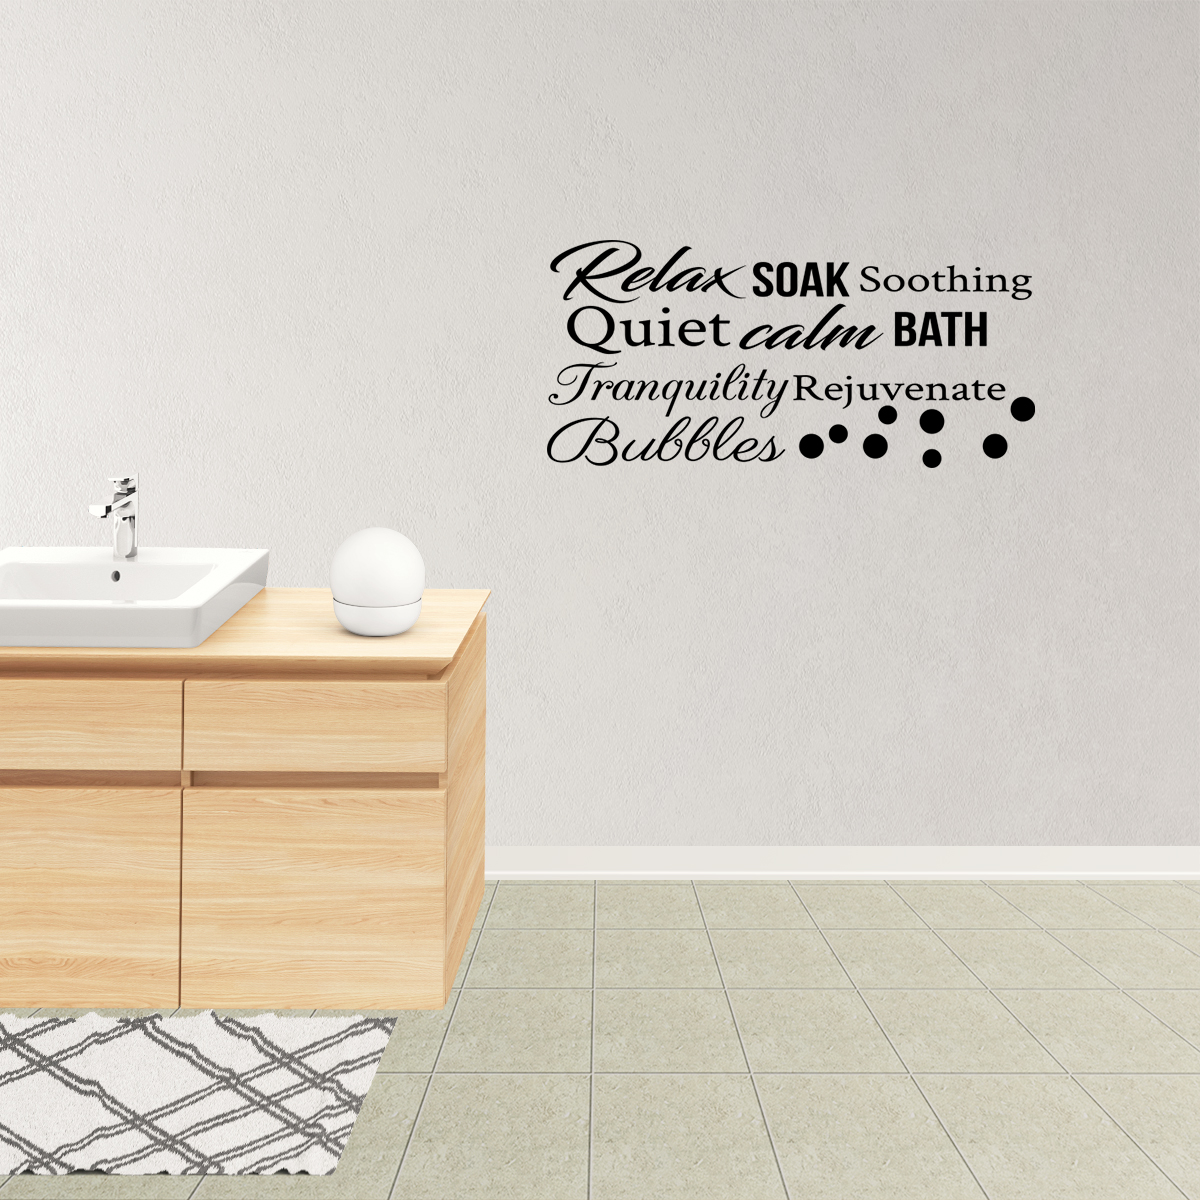 Wall Decal Quote Relax Soal Soothing Calm Tranquility